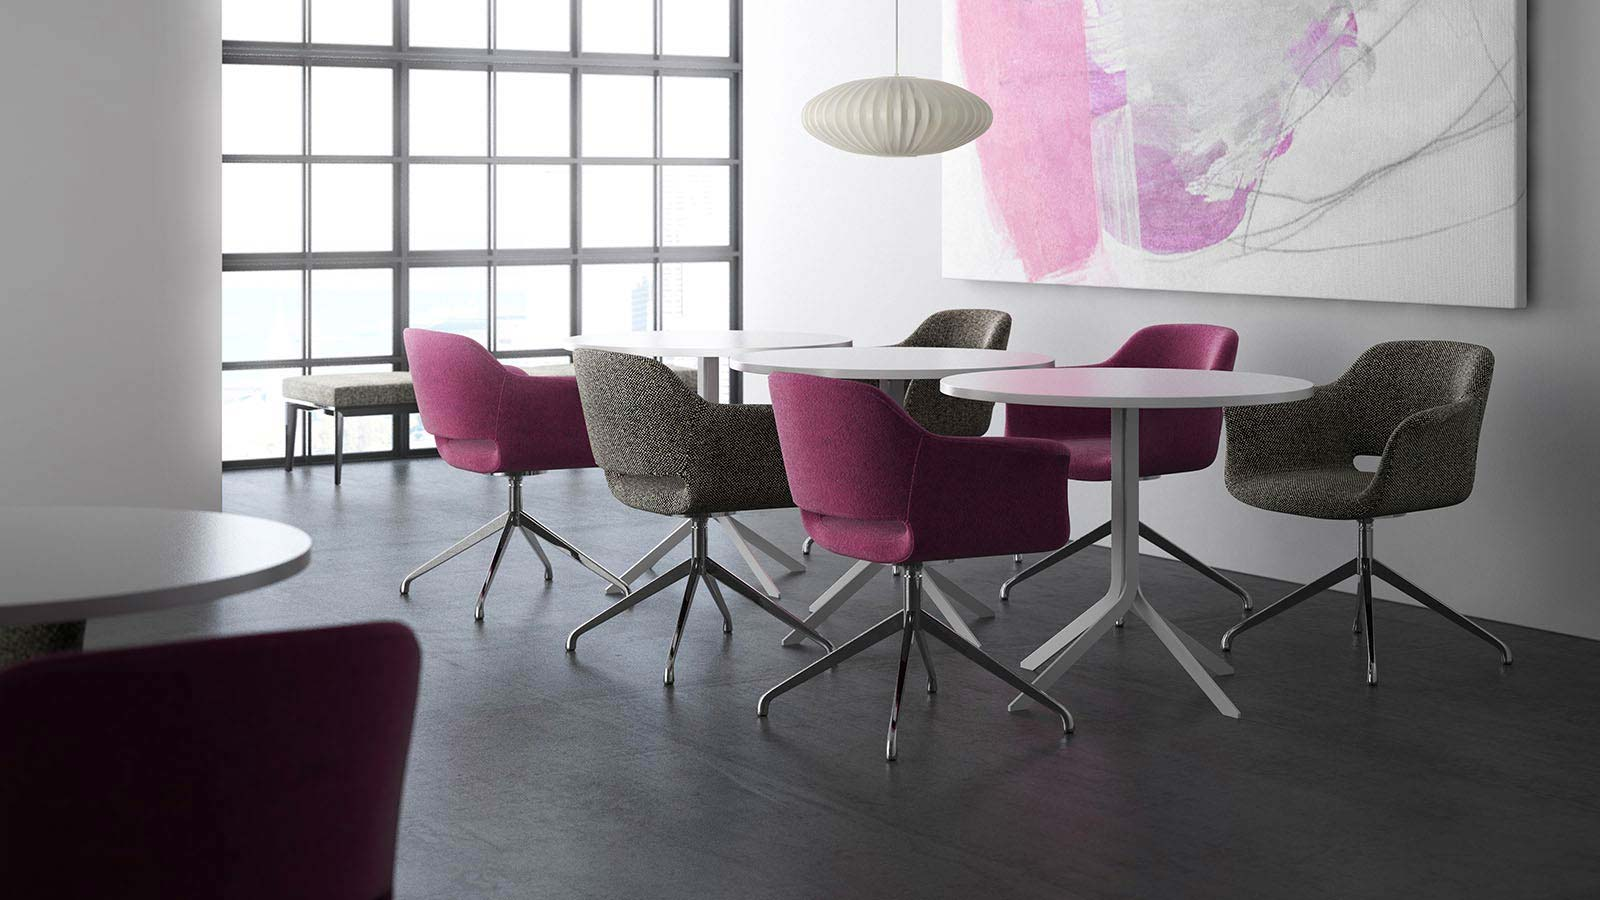 Furniture for Lounge and Collaborative Purposes